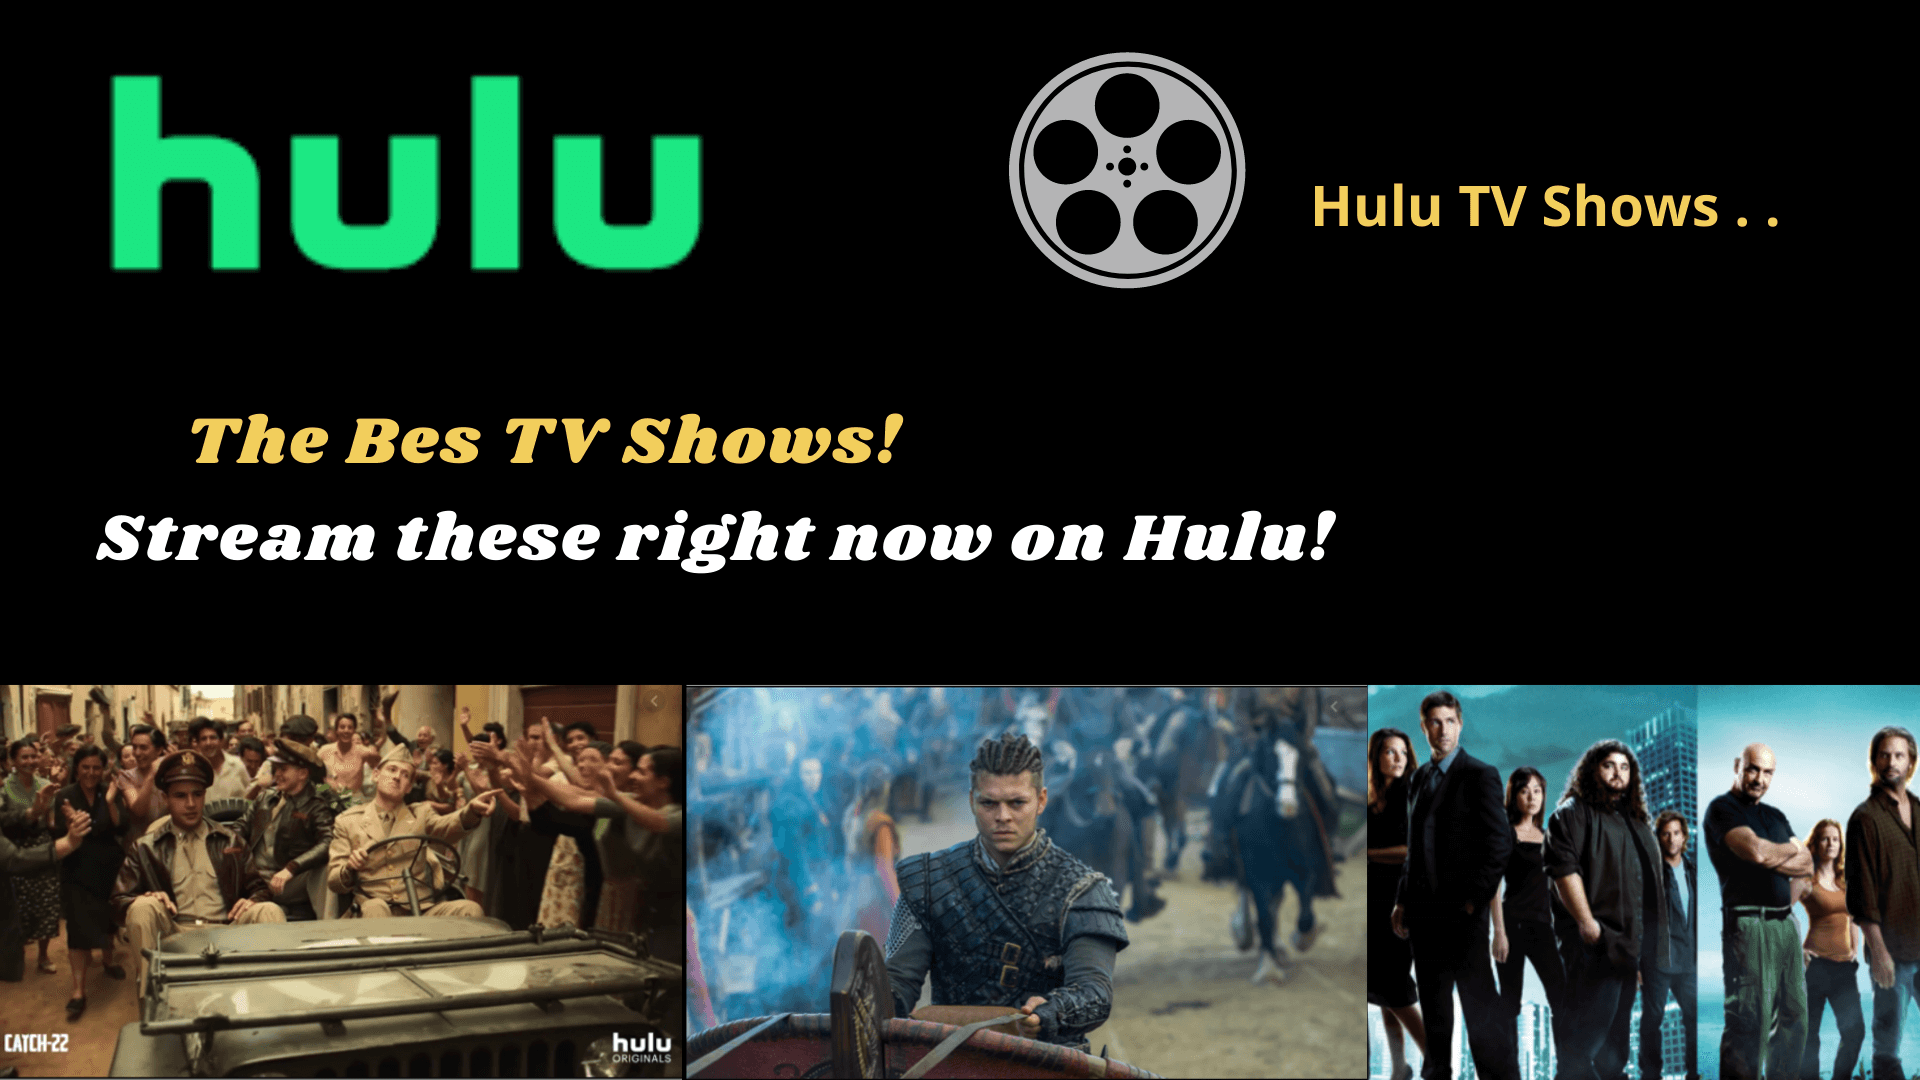 The Best TV Shows on Hulu